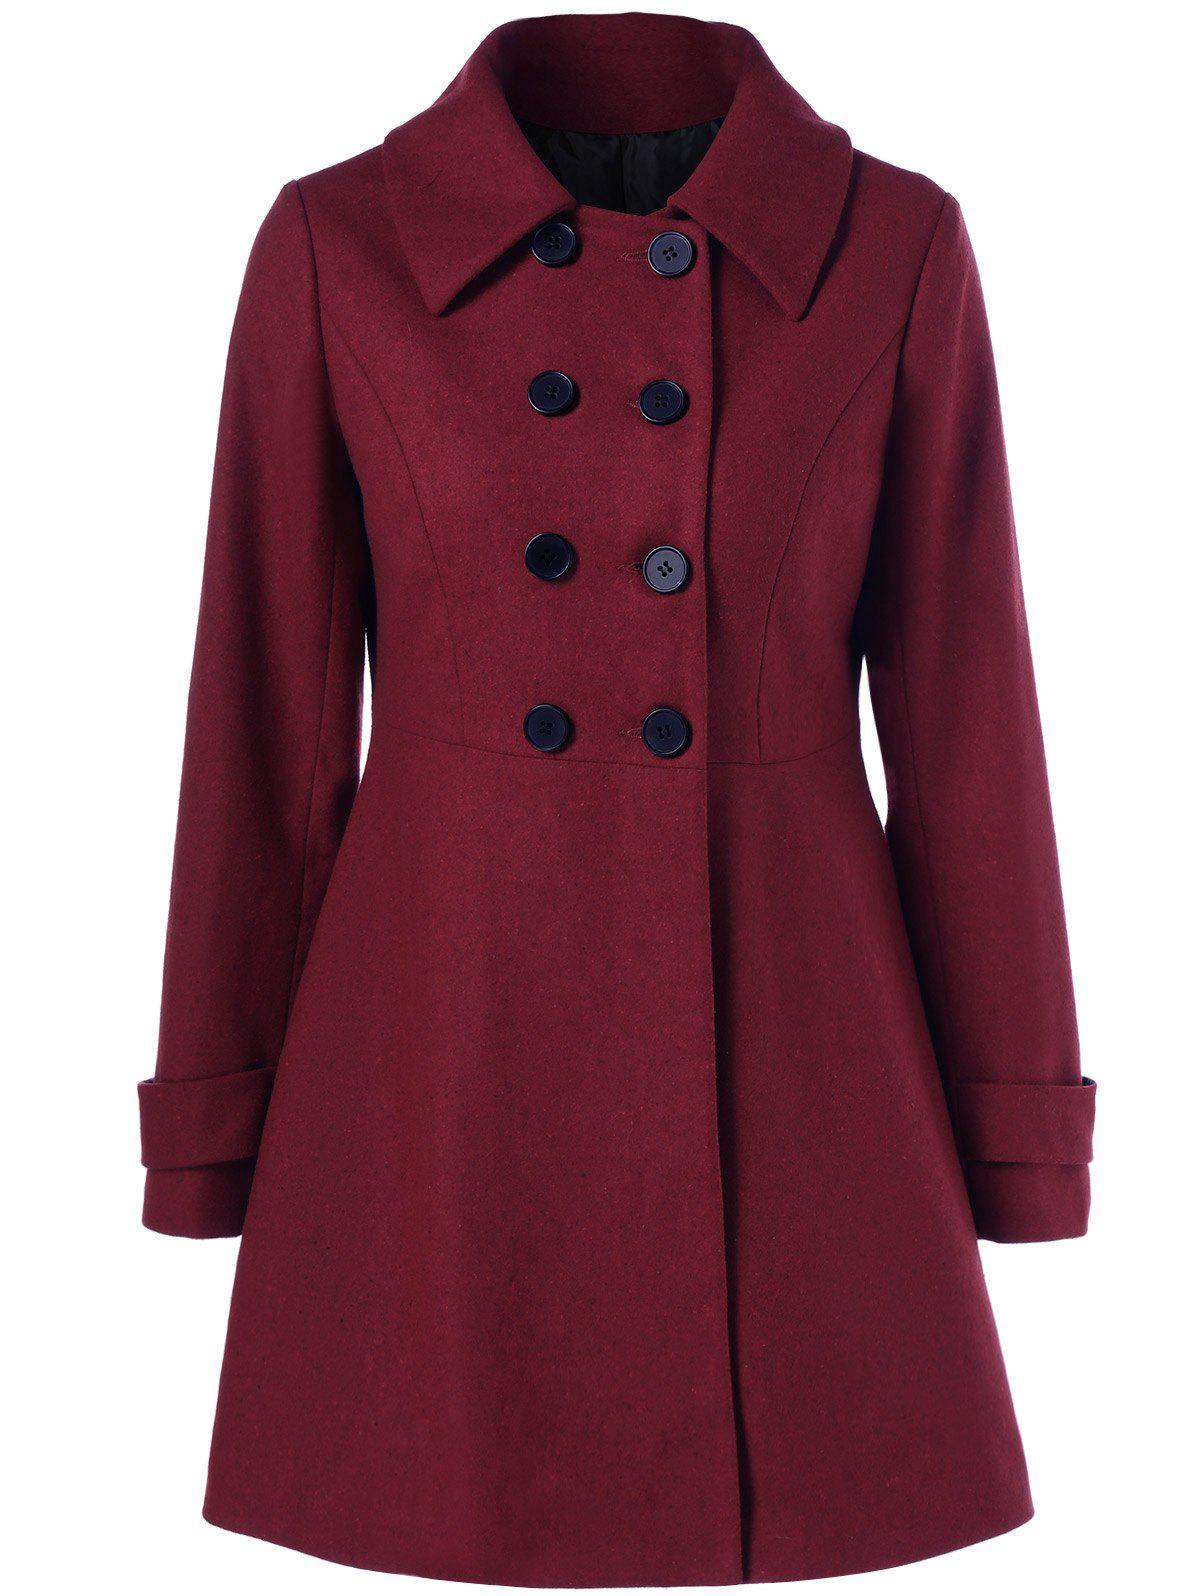 Wool Double Breasted Skirted Overcoat - WINE RED L